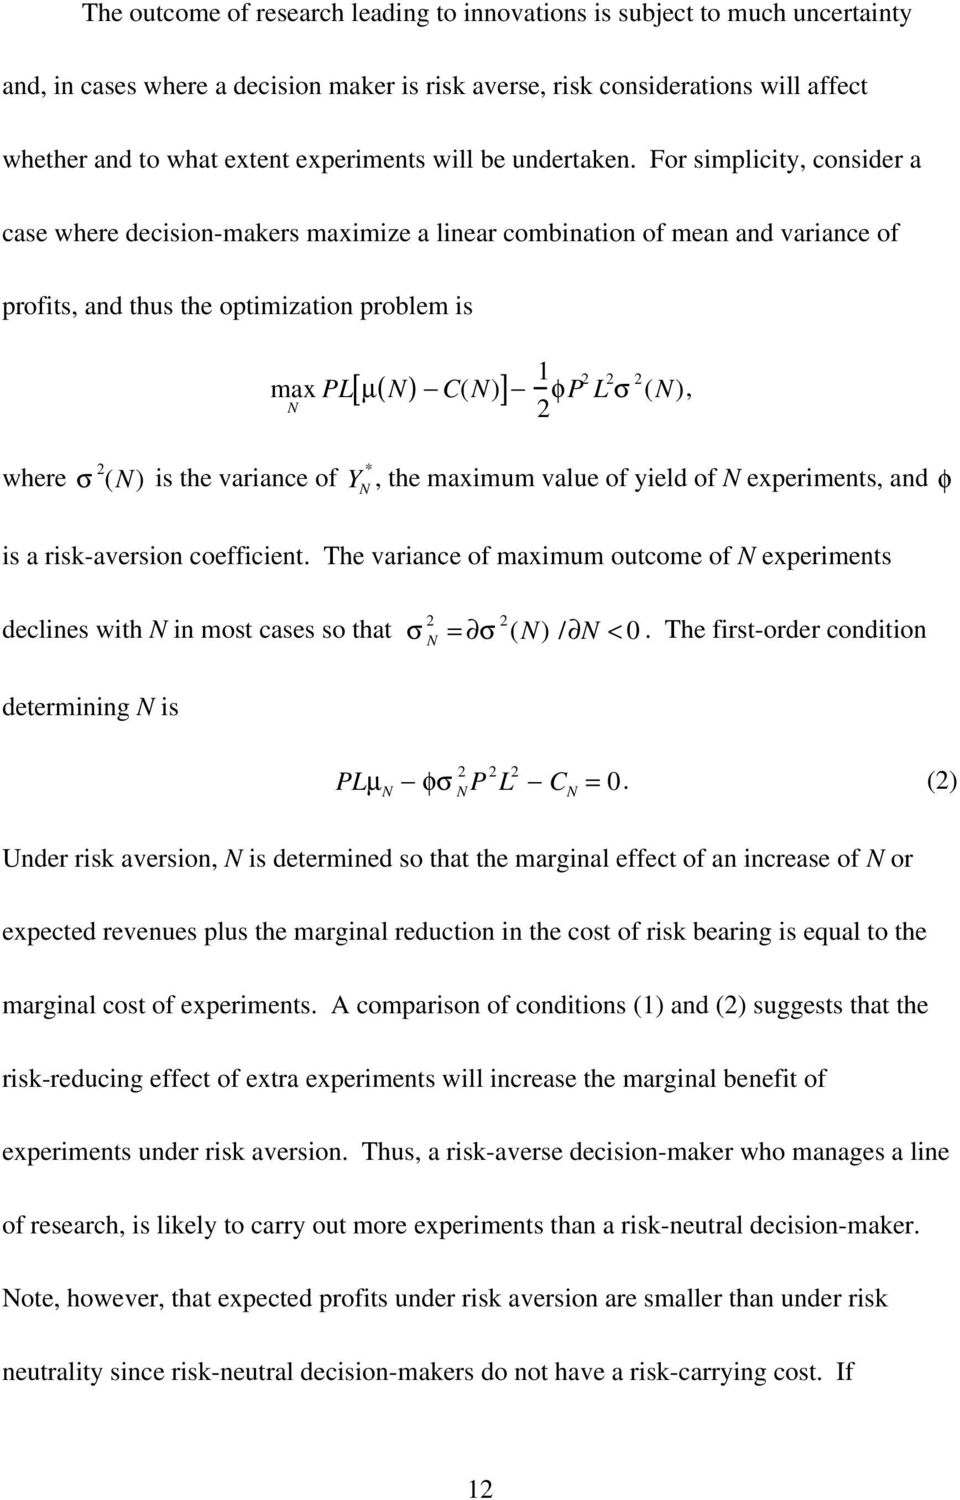 For simplicity, consider a case where decision-makers maximize a linear combination of mean and variance of profits, and thus the optimization problem is max N PL [ µ ( N) C(N) ] 1 2 φp2 L 2 σ 2 (N),